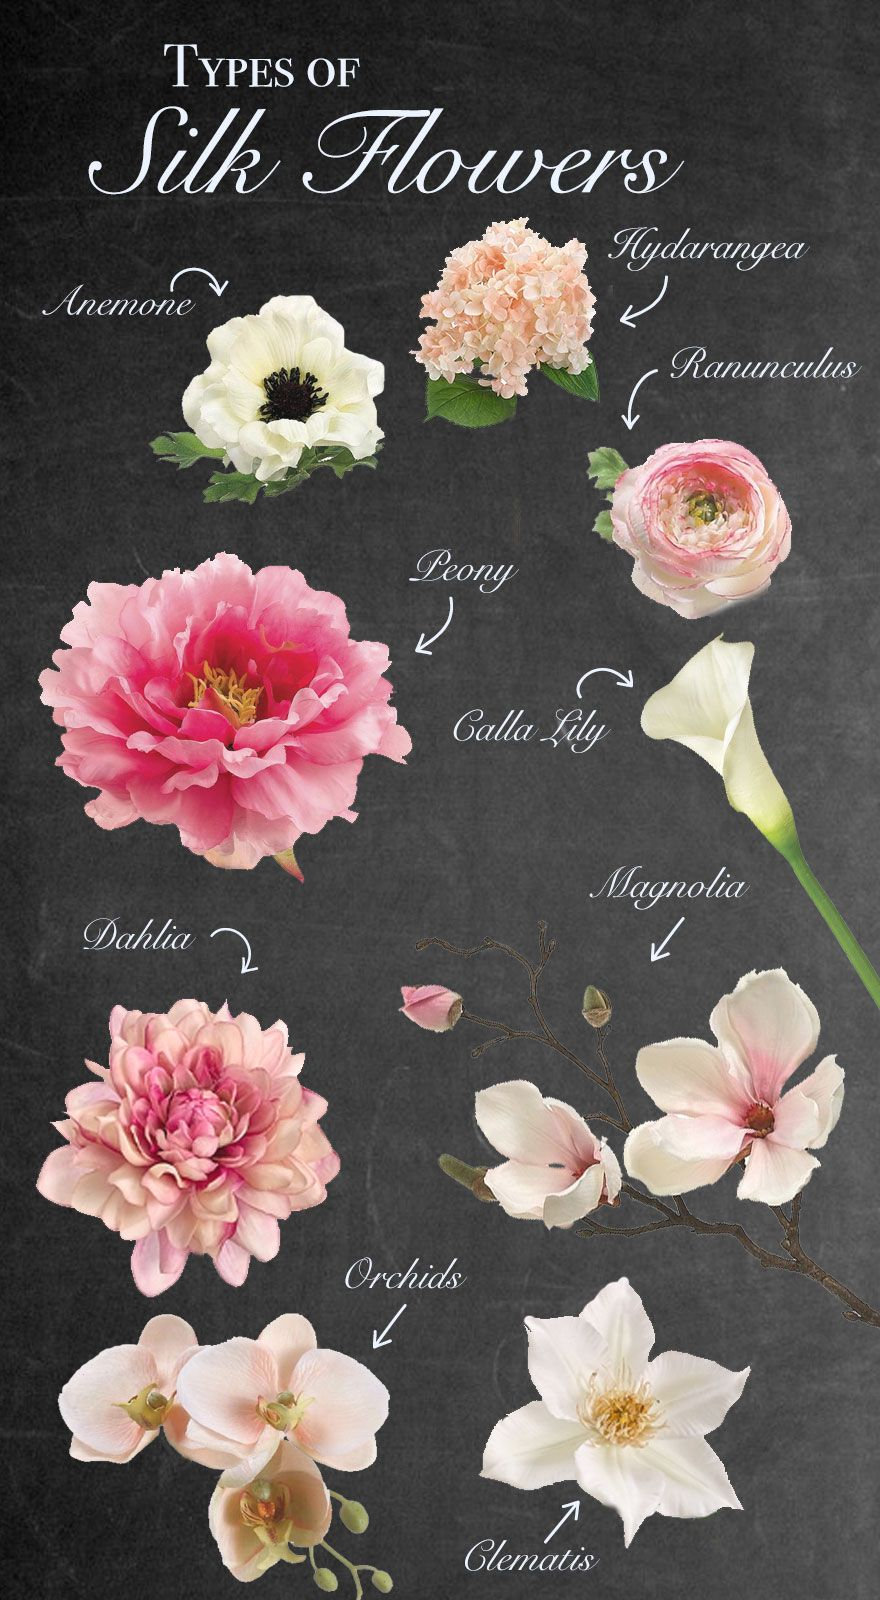 A guide to silk wedding flowers from afloral afloral afloral silk wedding flowers wedding bouquets corsages afloral izmirmasajfo Images